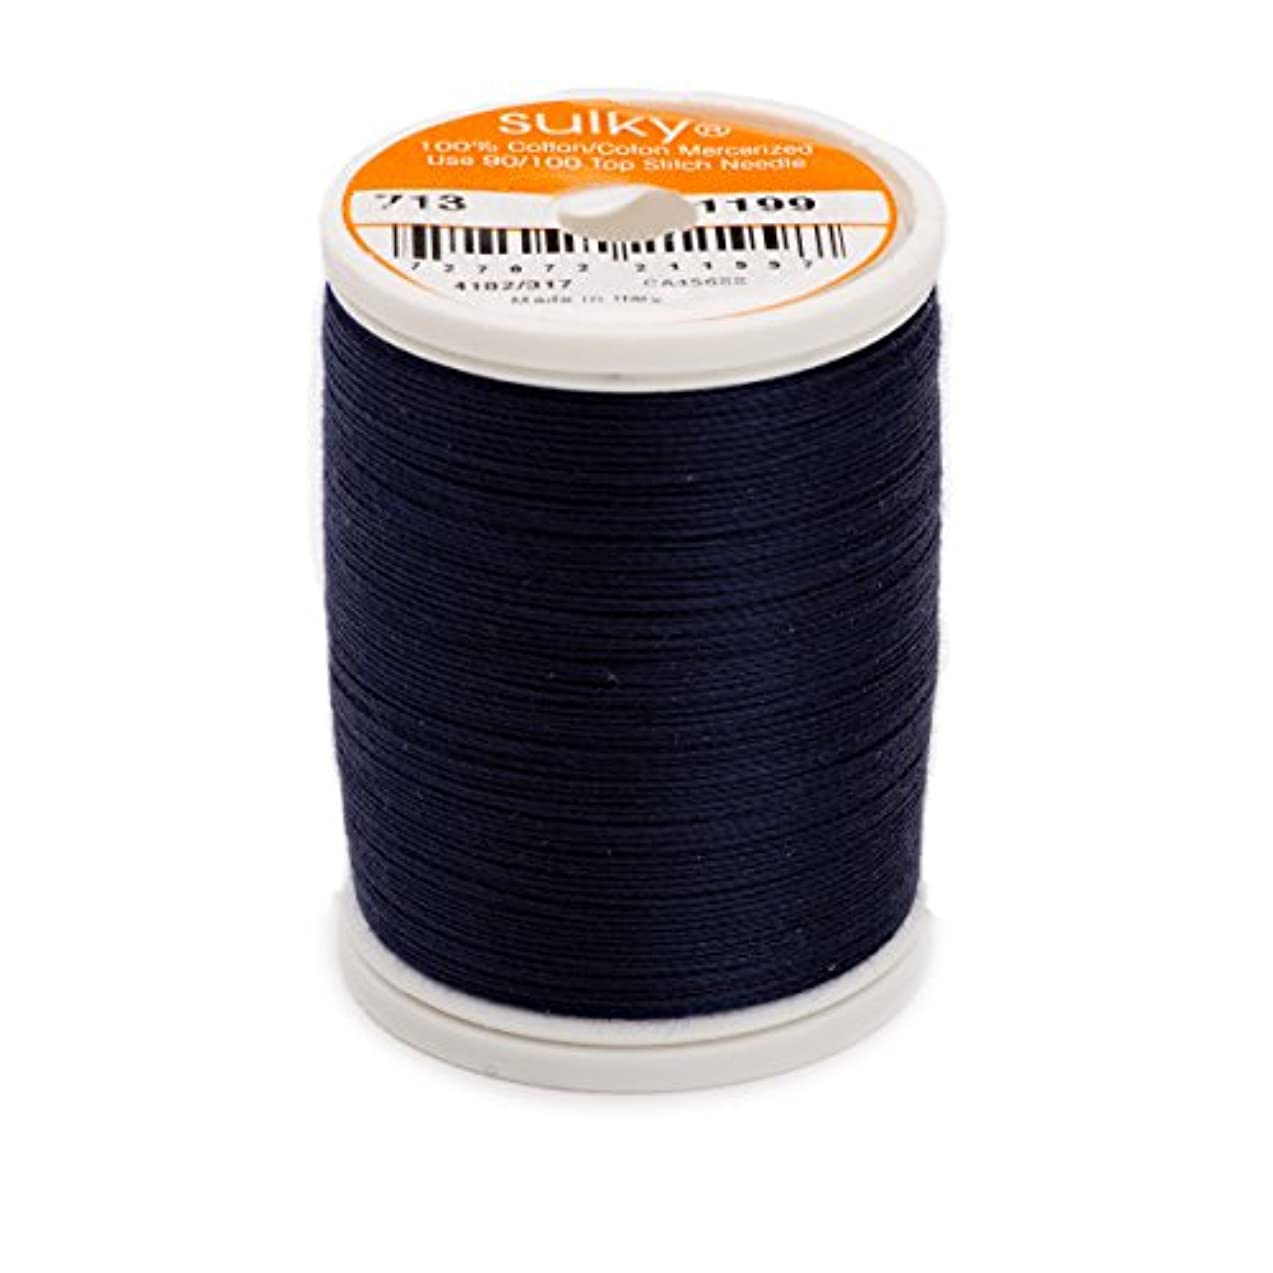 Sulky Of America 660d 12wt 2-Ply Cotton Thread, 330 yd, Admiral Navy Blue